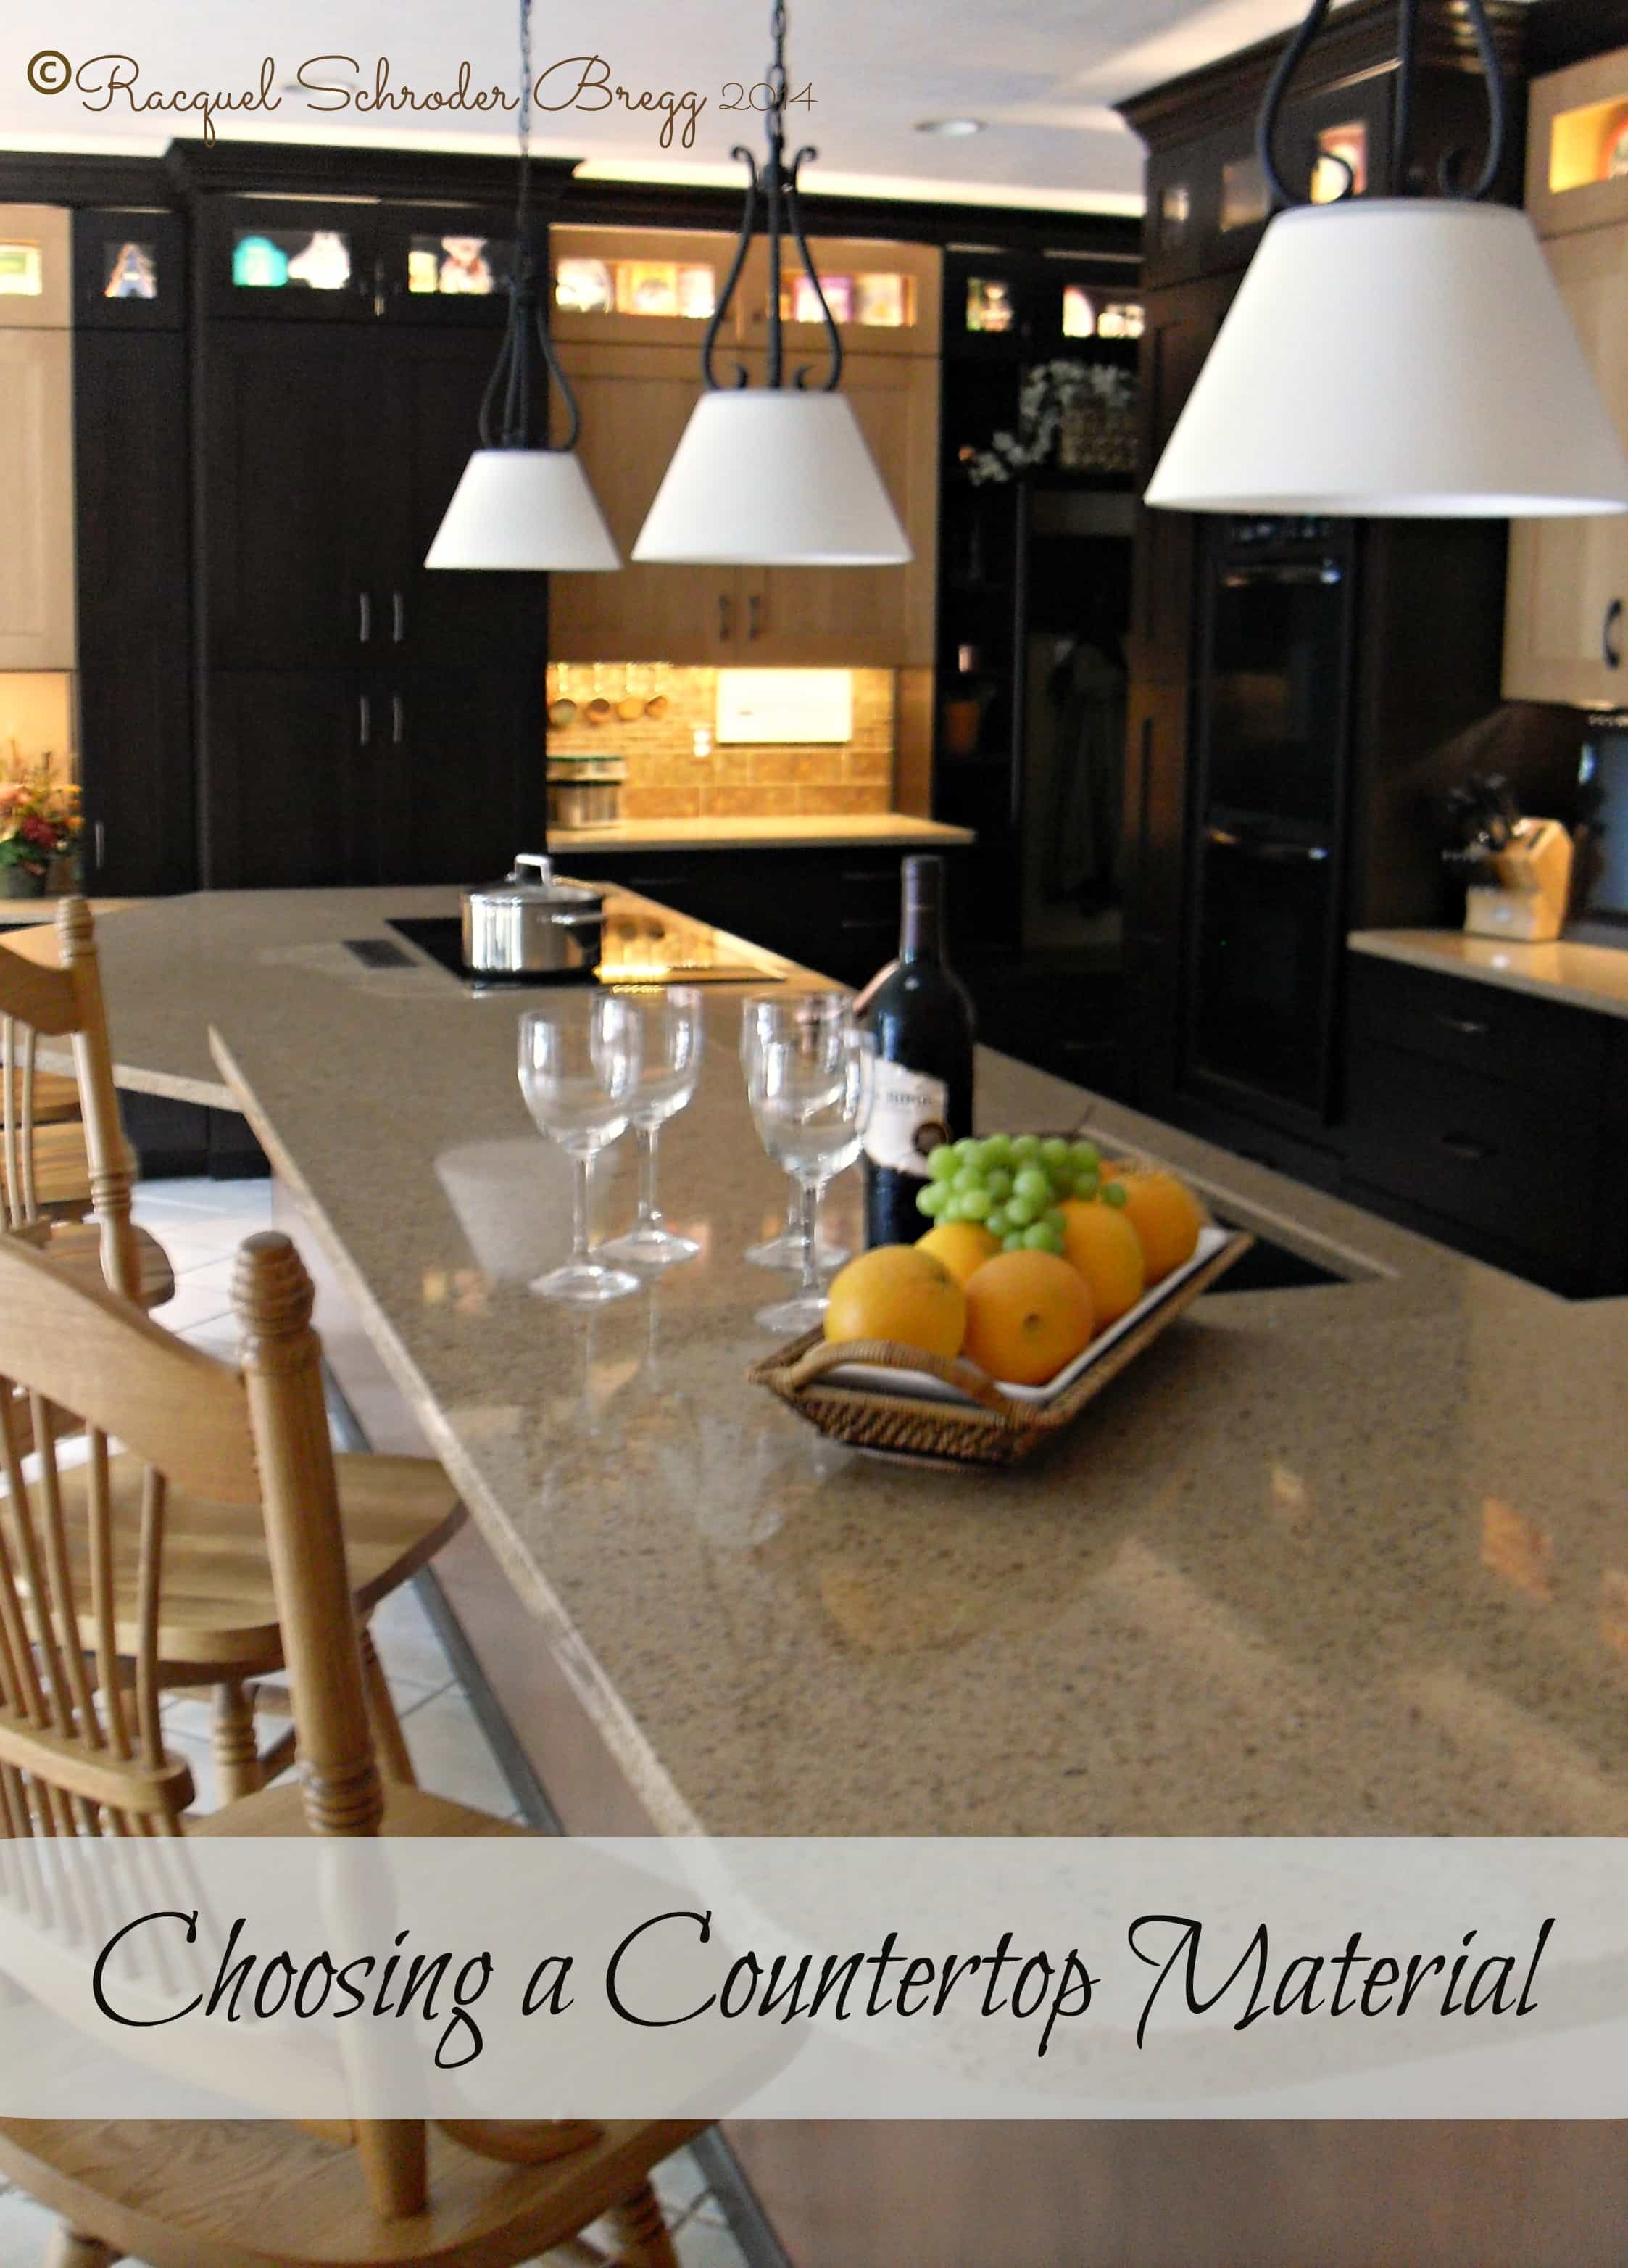 Types Of Countertop Material Pros And Cons : ... countertop materials with pros and cons of each, and countertops by